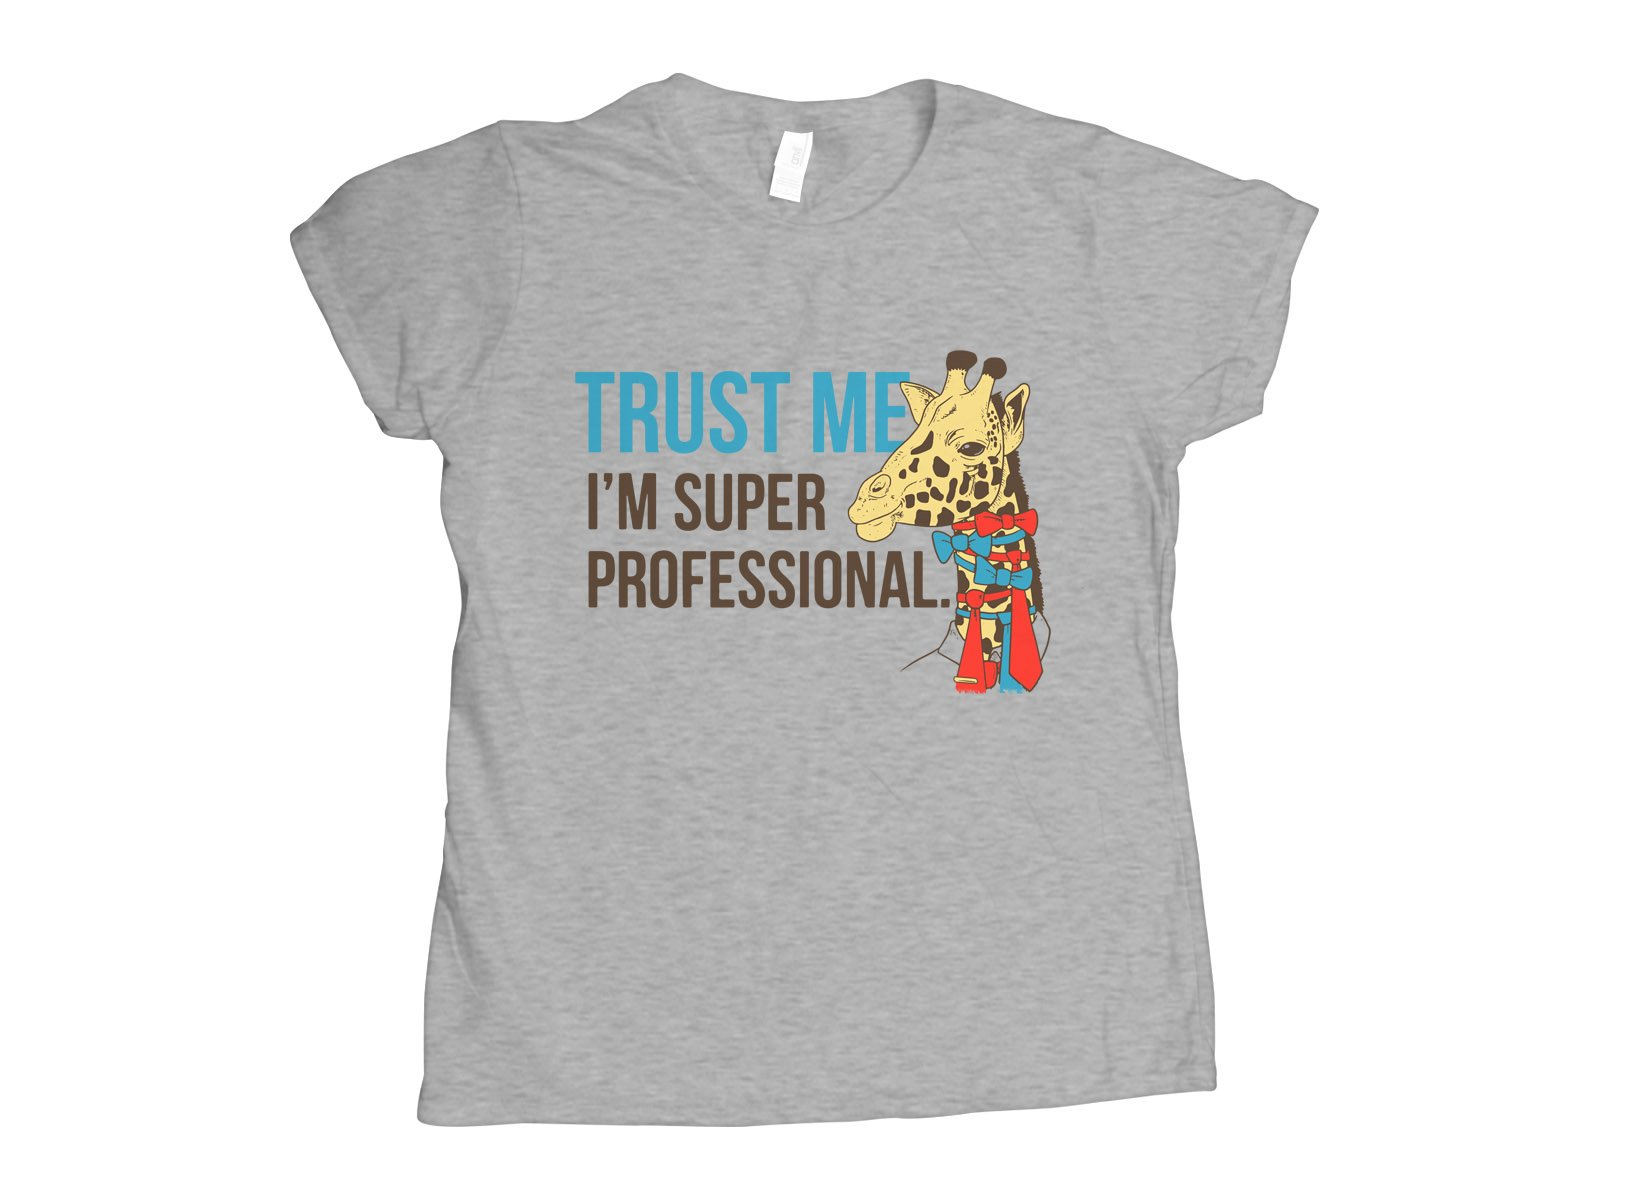 Trust Me I'm Super Professional on Womens T-Shirt